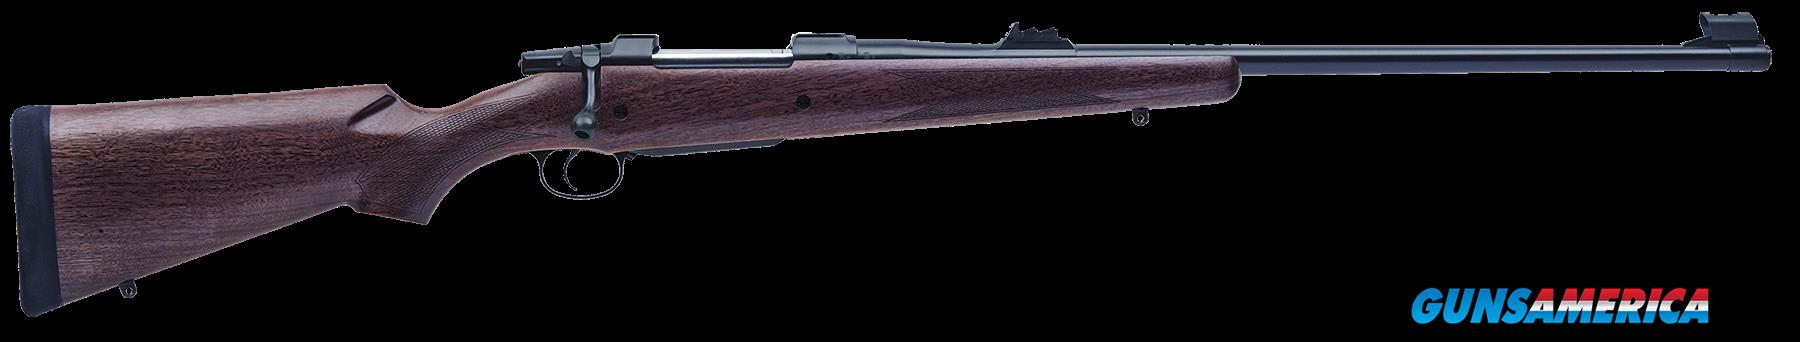 "CZ 04212 CZ 550 American Safari Magnum Bolt 416 Rigby 25"" 3+1 Walnut Stk Blued  Guns > Pistols > CZ Pistols"